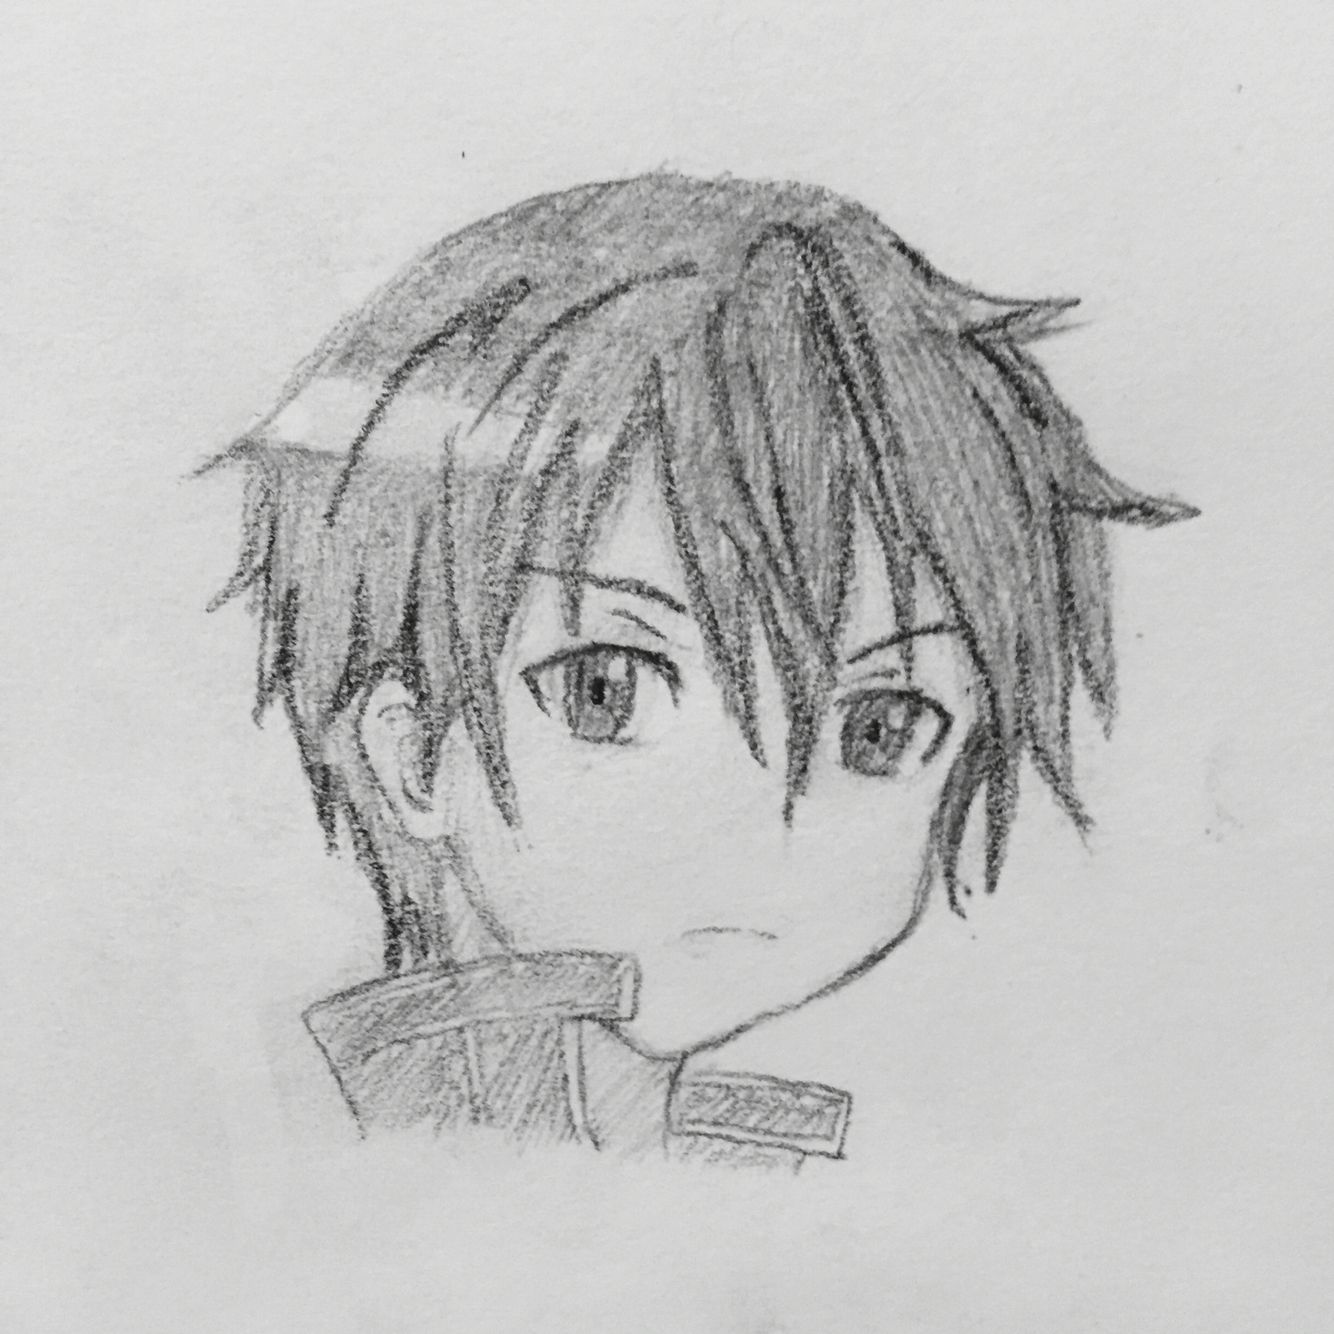 I sketched Kirito from Sword Art Online. I tried to shade nicely but ...